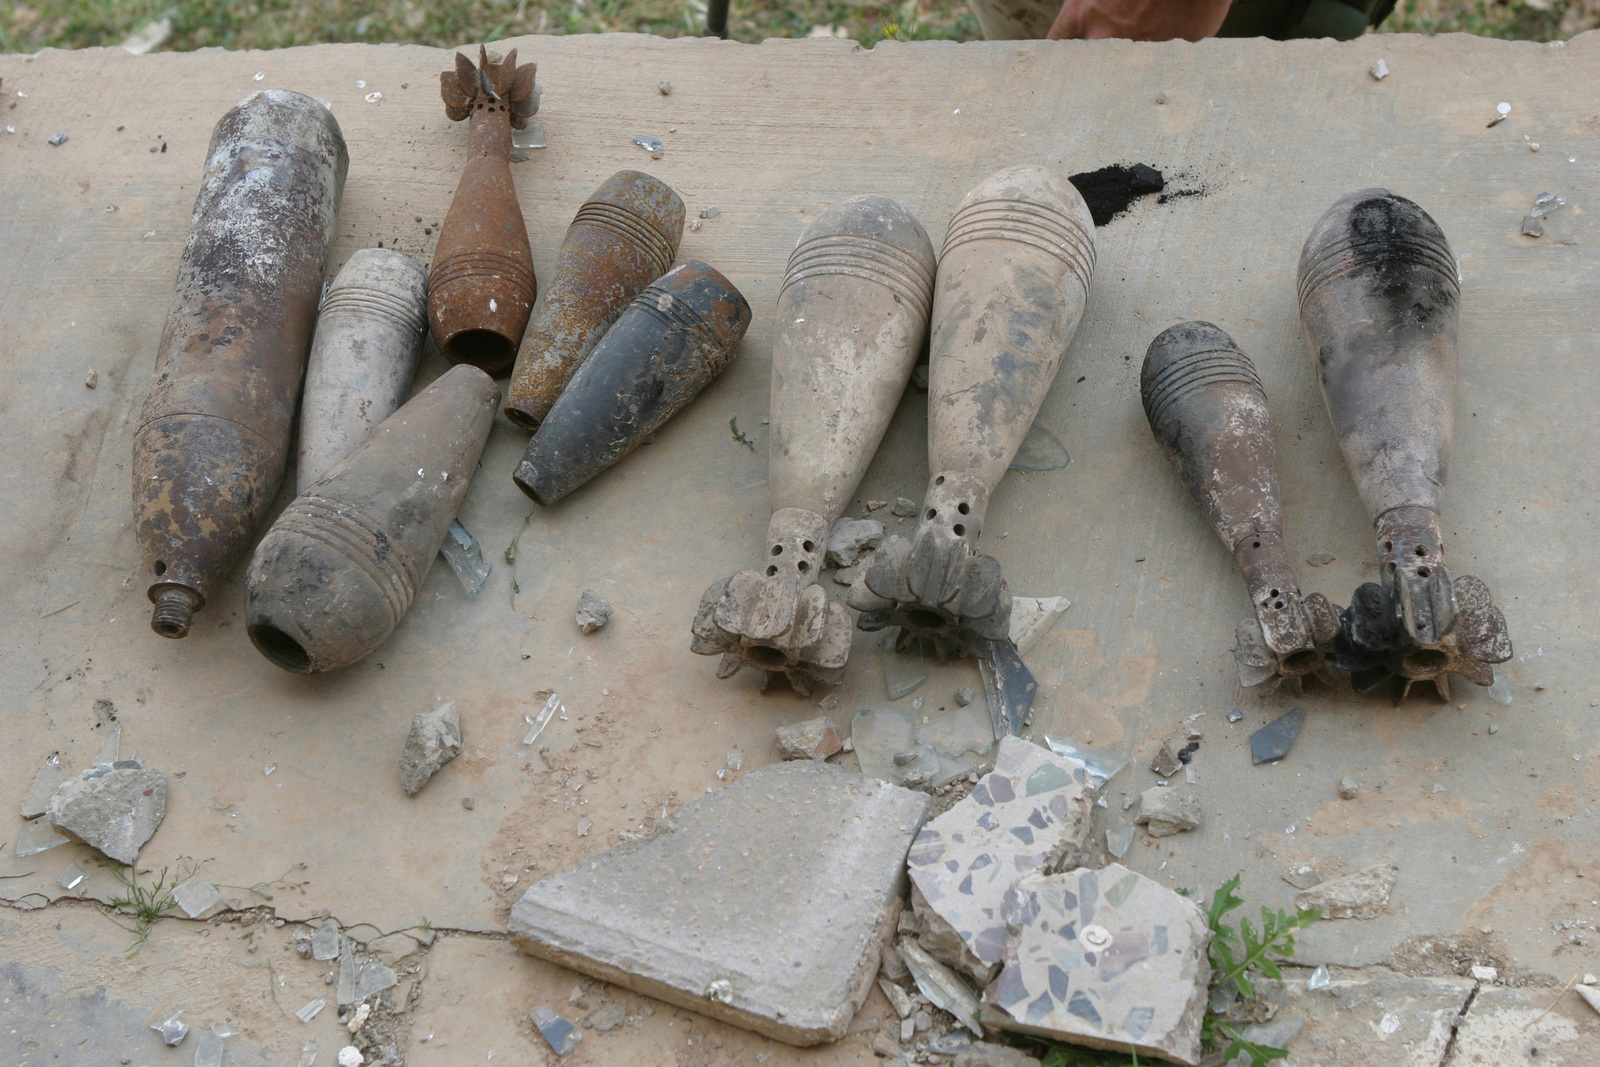 These mortar rounds were found inside a former Iraqi Army